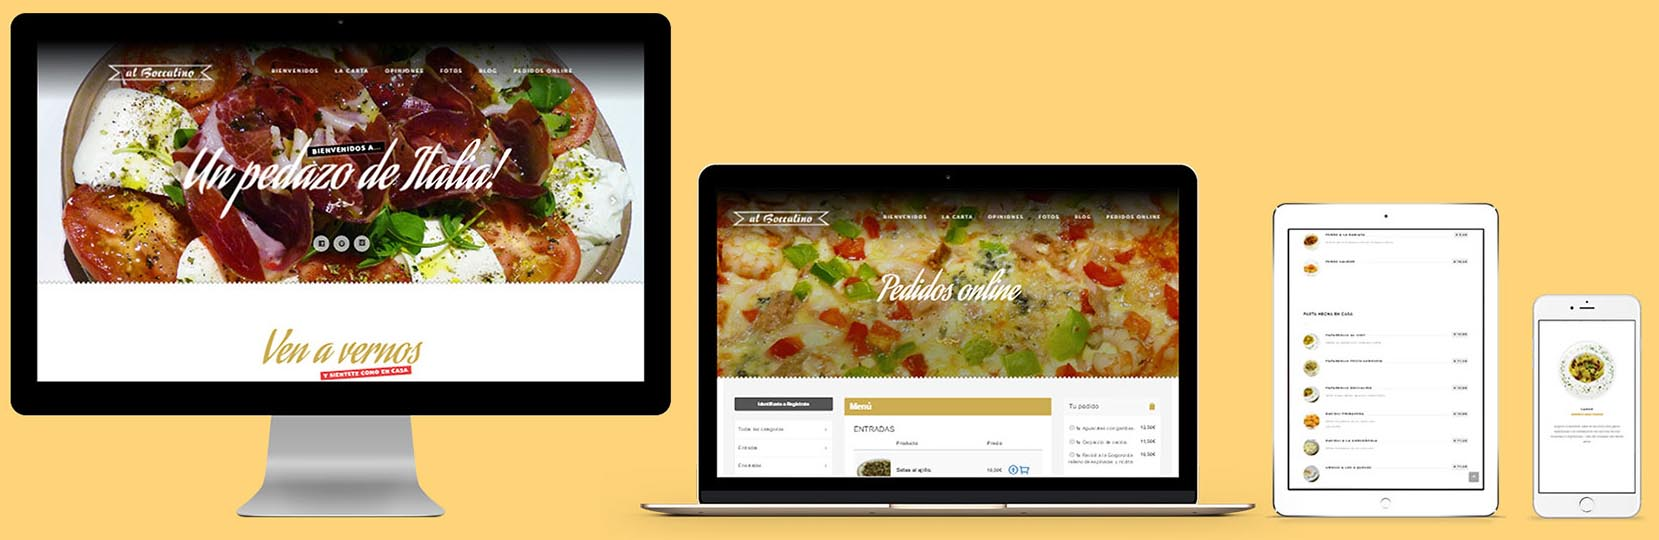 Restaurante Al boccalino website by